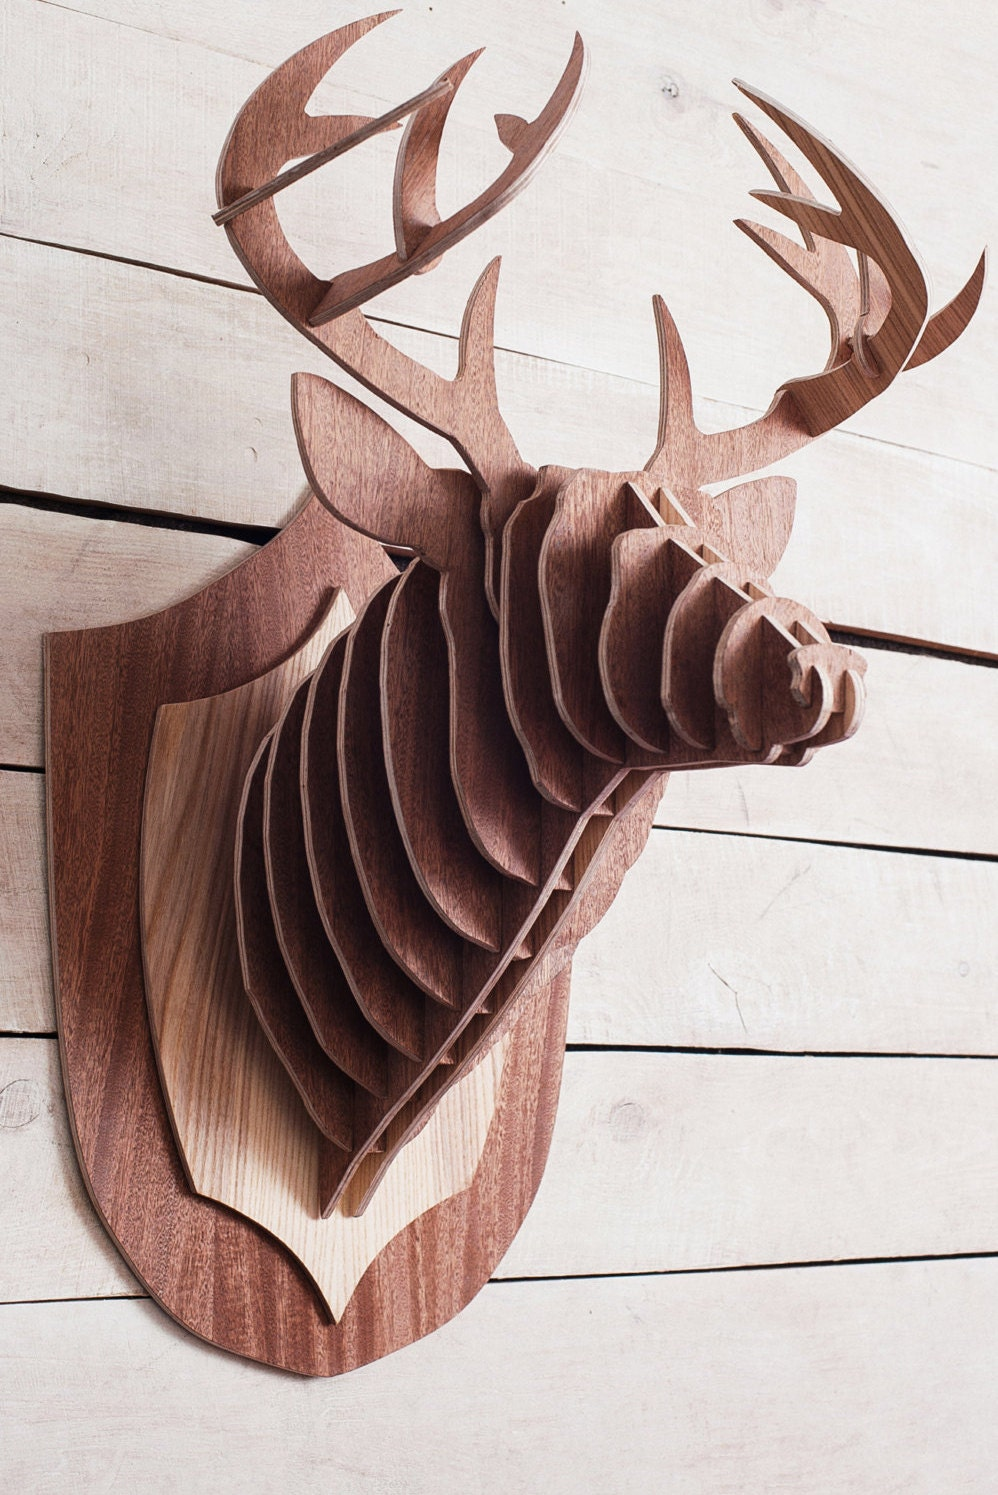 Wall Decor Plywood Stag Head Trophy Deer : Wooden deer head d puzzle taxidermy animals stag trophy